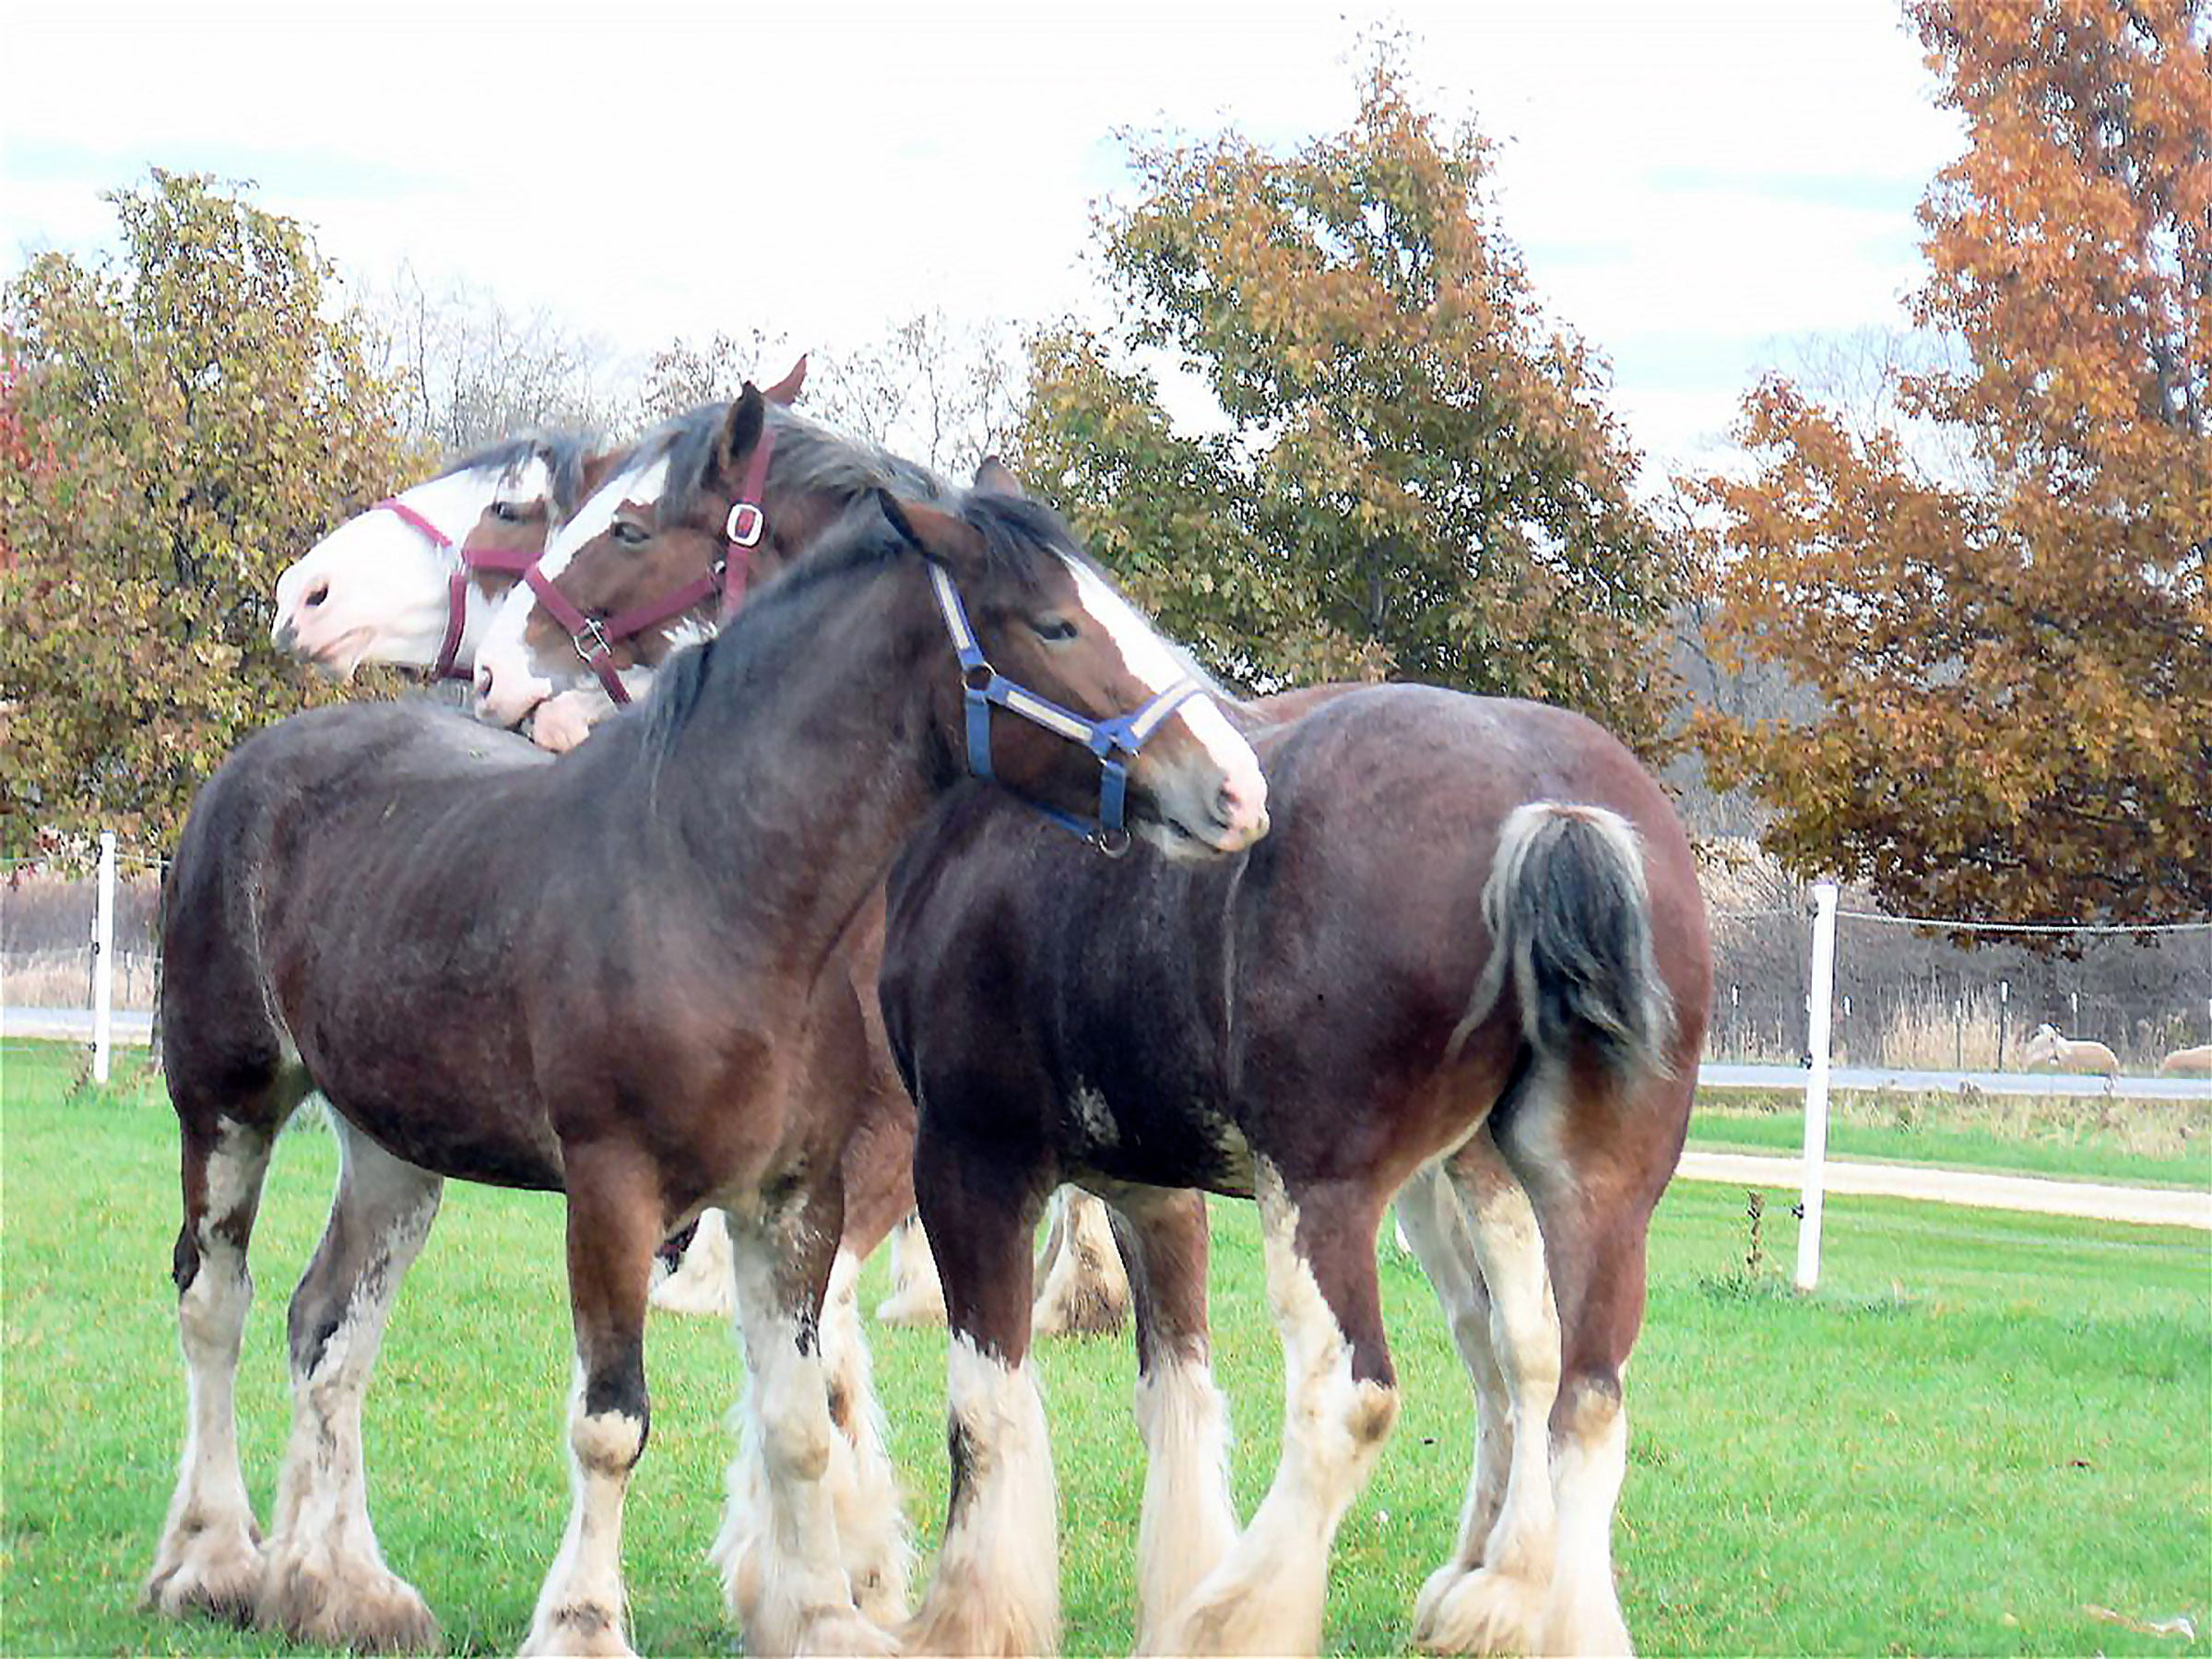 Three Clydesdales at the Airgood pasture in Marshall.